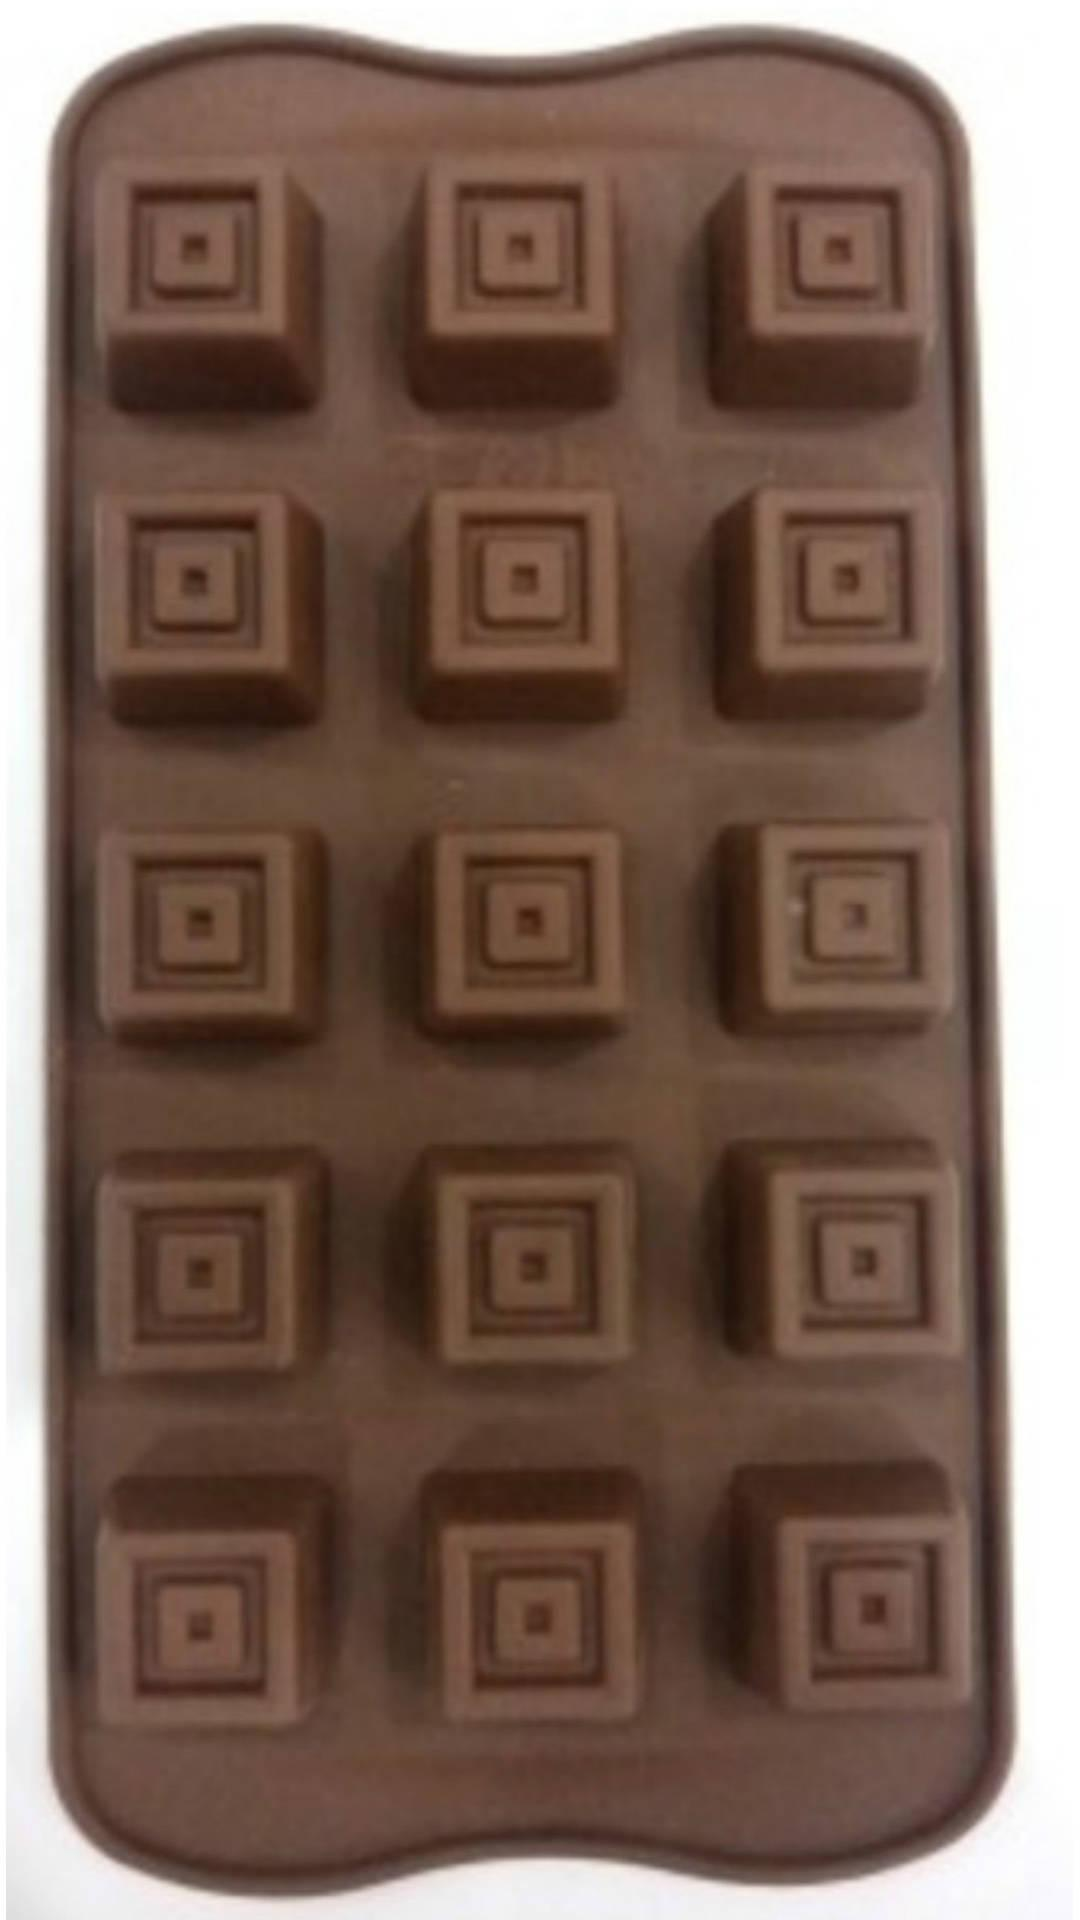 Kewlcakes Chocolate Candy Jelly Muffin Cake Baking Mould In Square Cube Shape